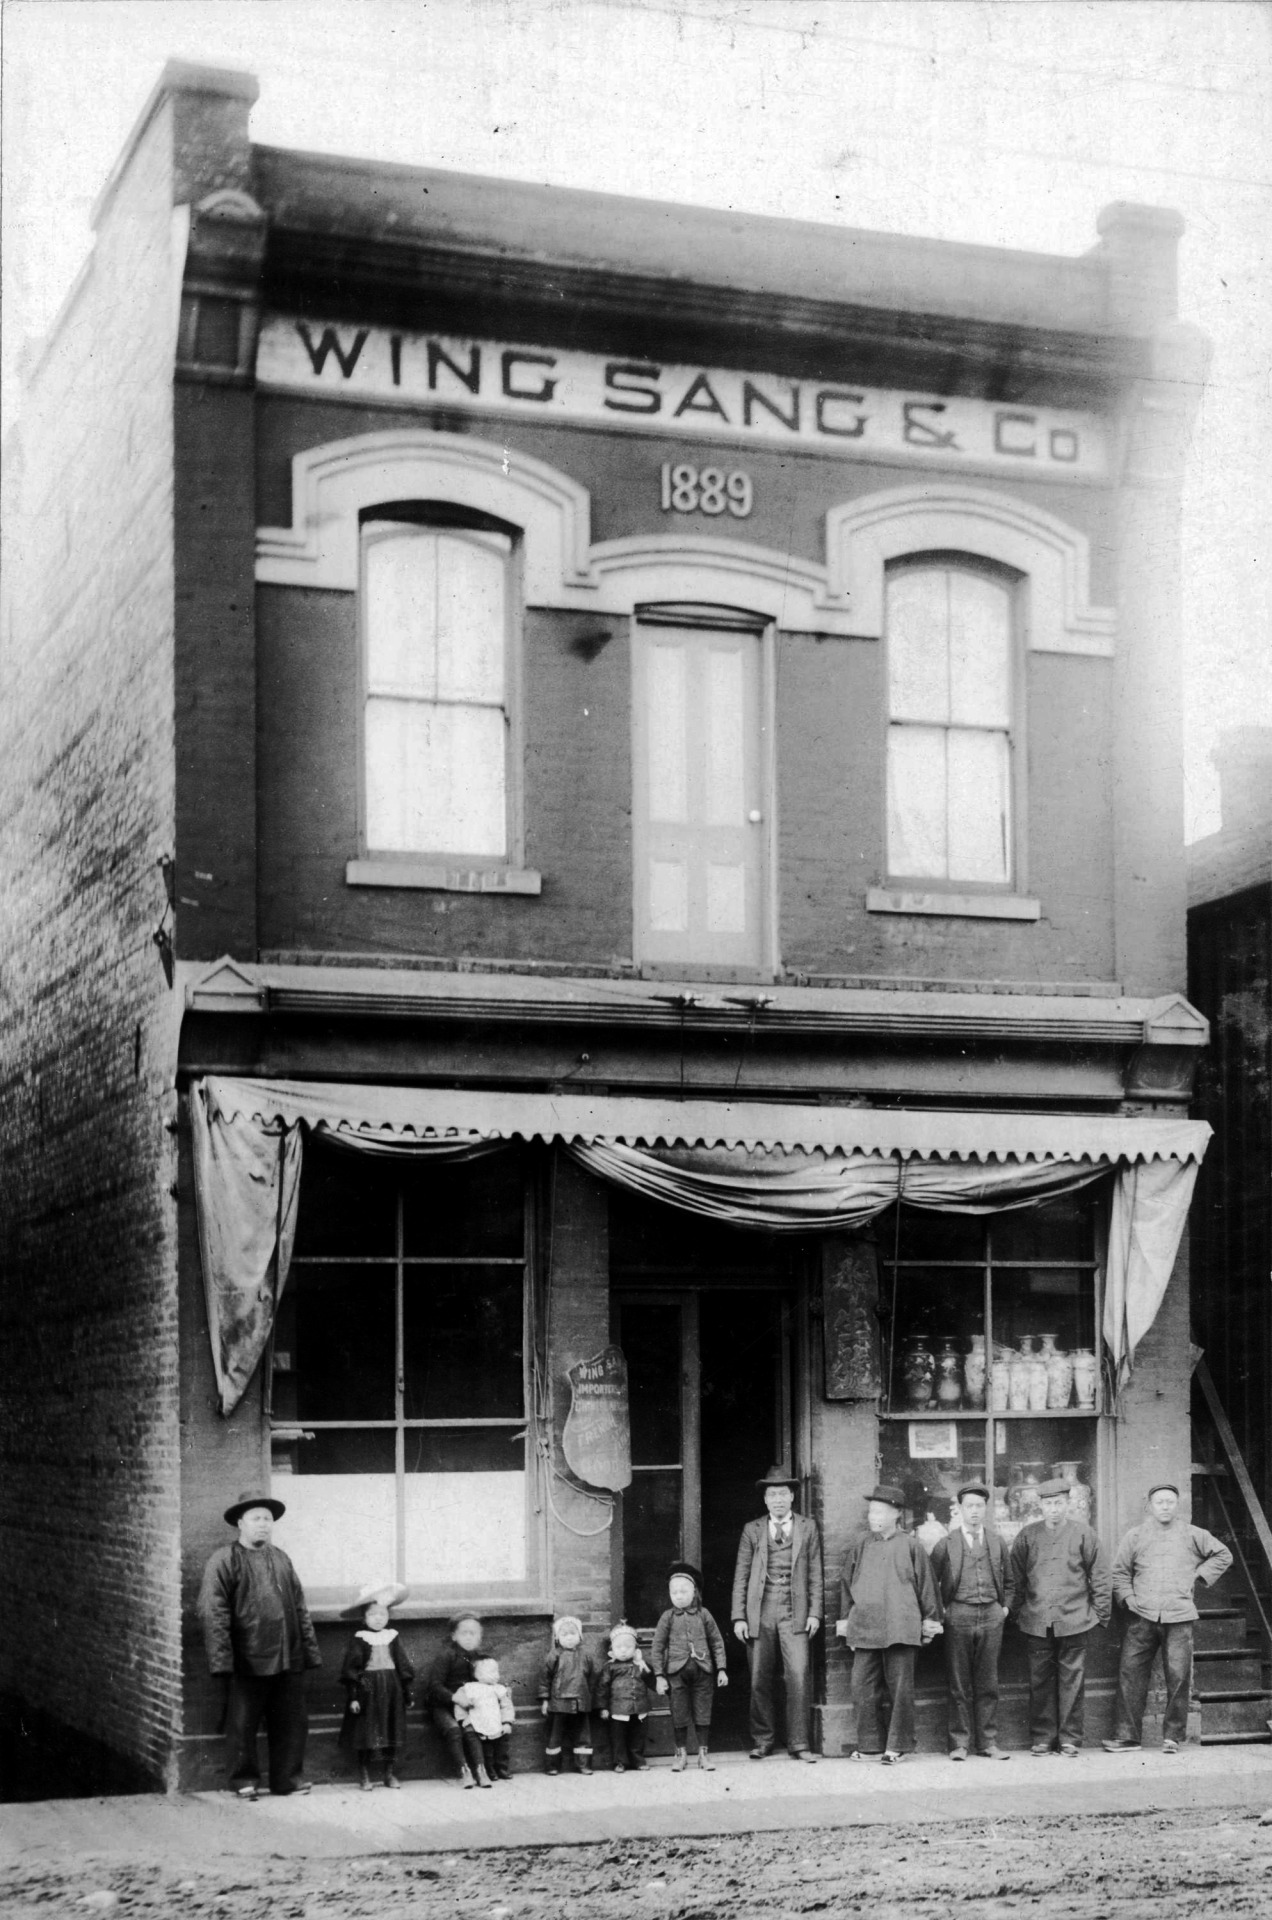 Yip Sang et al at 51 Dupont Street, 1900 The Wing Sang building is Chinatown's oldest building. Yip Sang was probably the most successful business men in Chinatown, largely through providing Chinese labourers to the Canadian Pacific Railway. Through this store he was a retailer, wholesaler, and importer of Chinese goods, including opium. Source: Photo by A Milne, City of Vancouver Archives #689-52